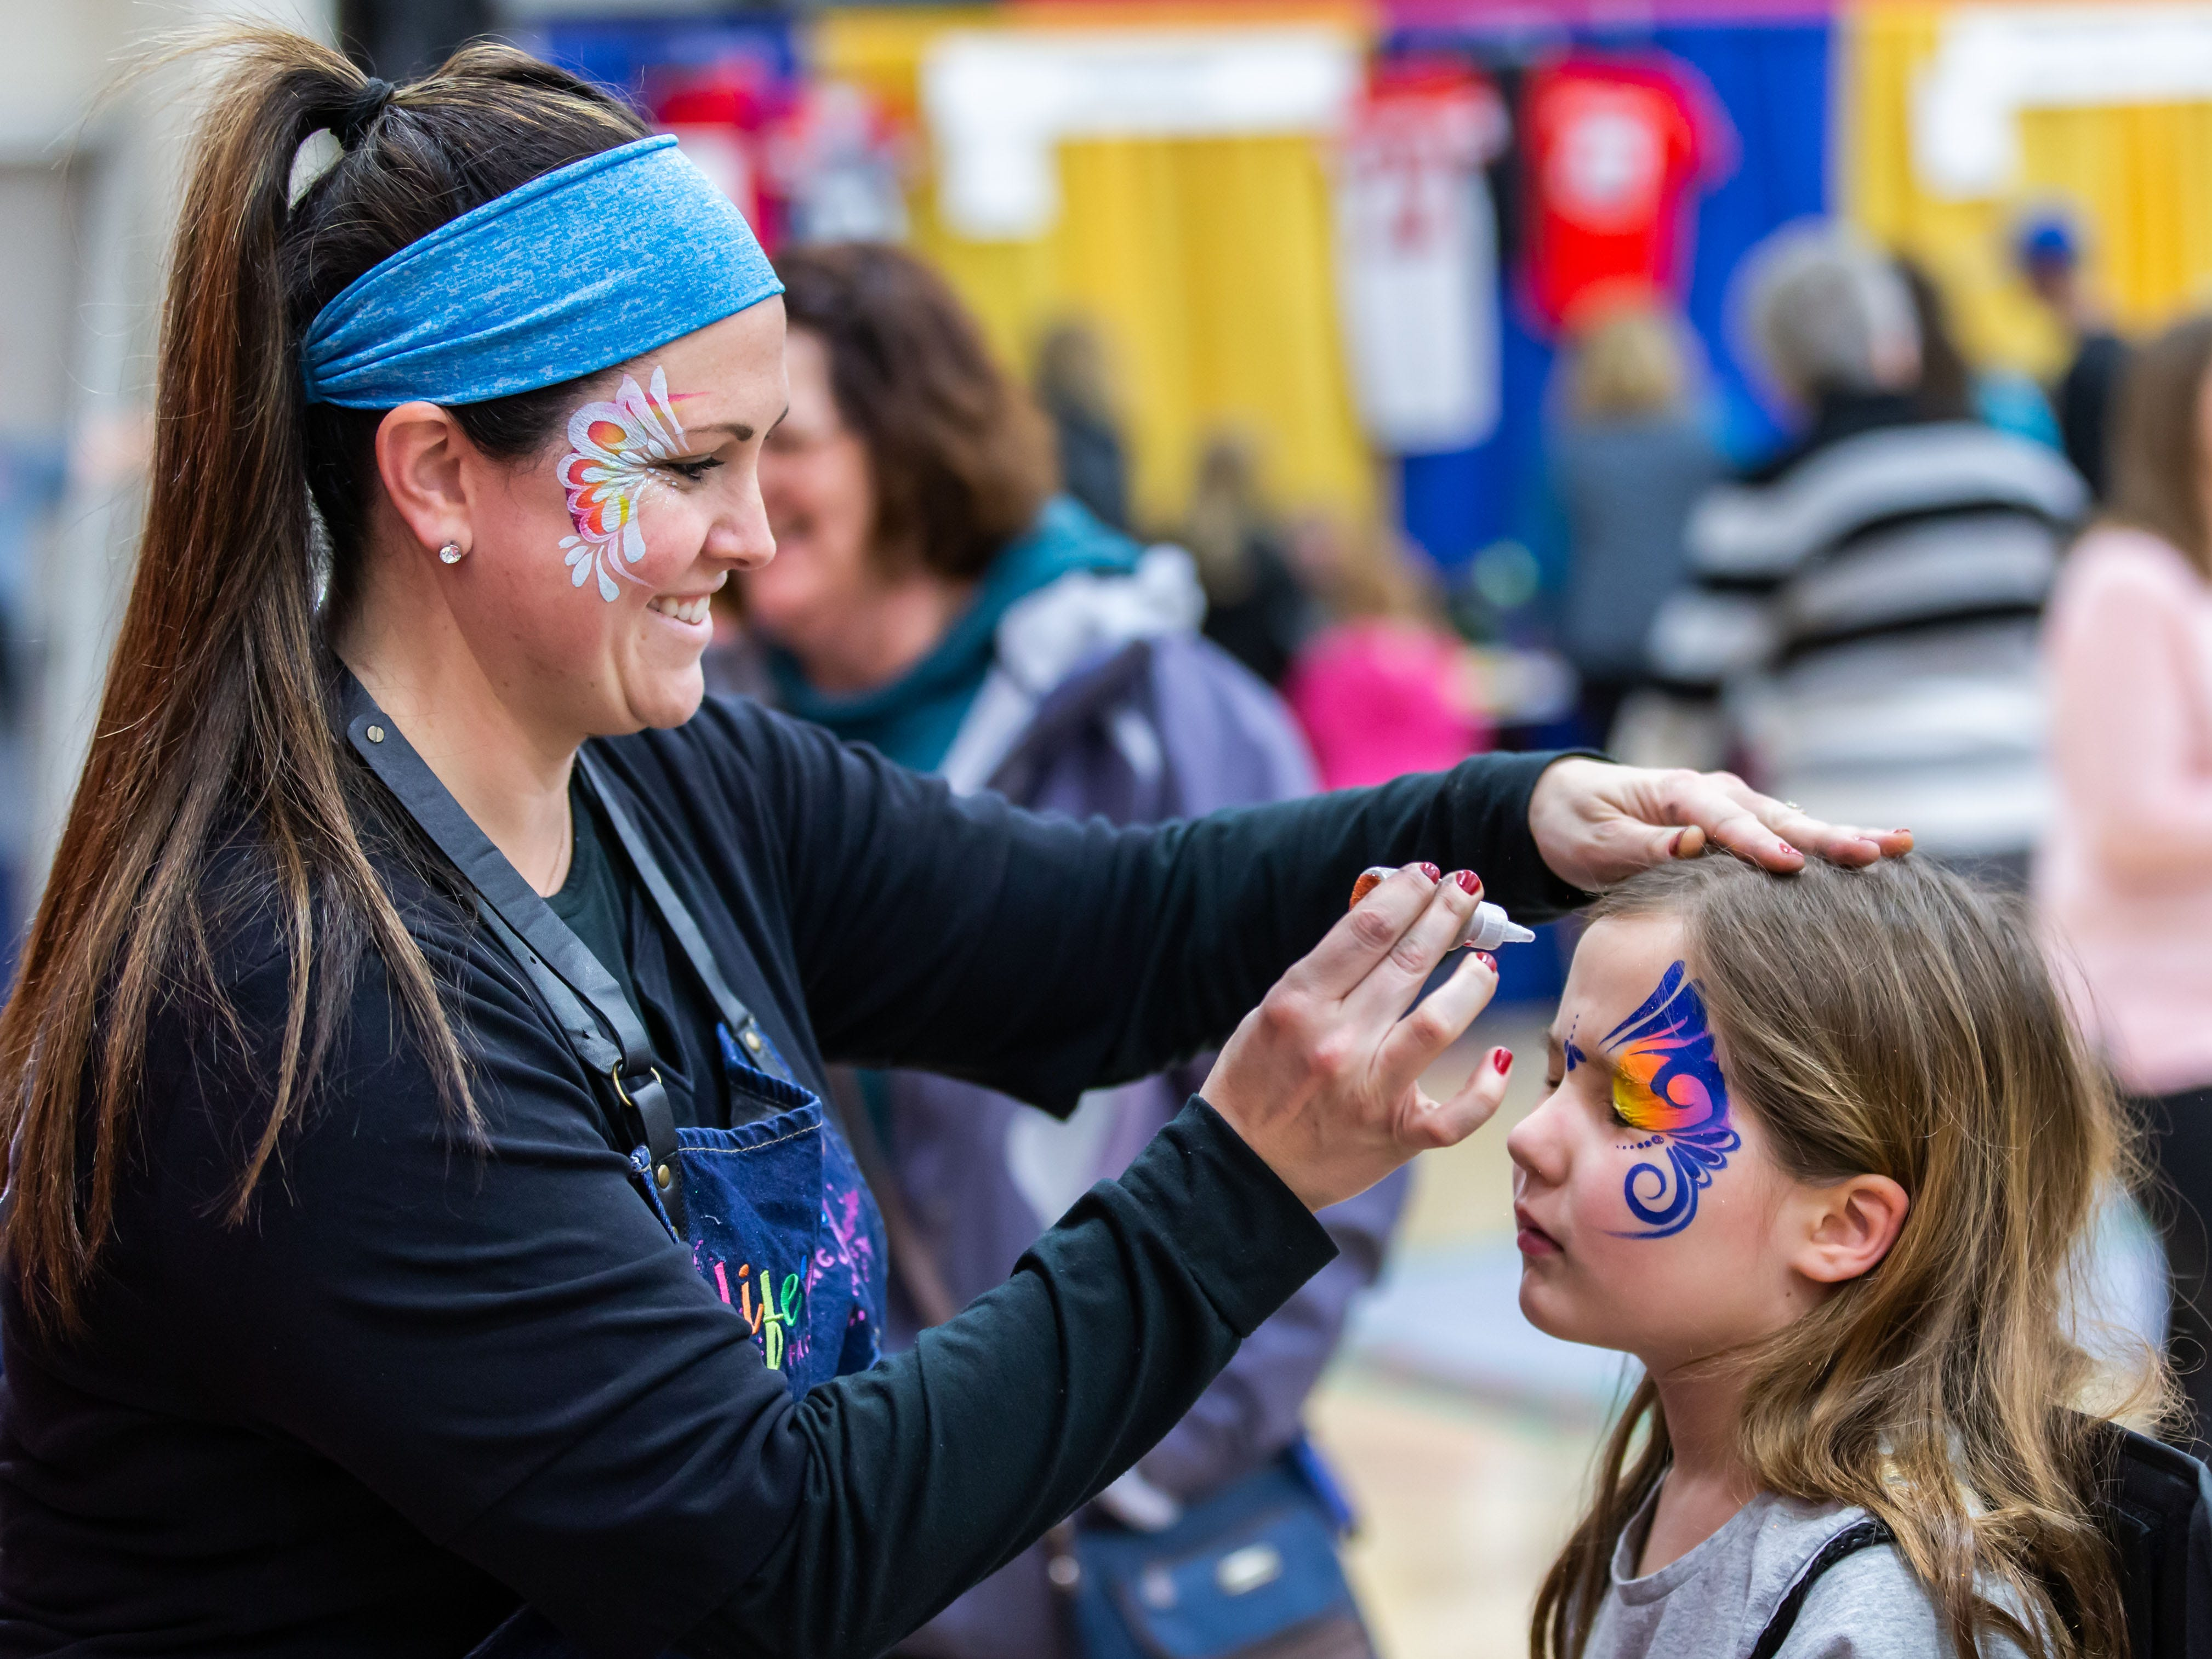 Seven-year-old Nora Booth of Nashotah sits for a face painting by artist Leea Woolard of Life's a Party - Face Painting, during Lake Country Community Fest at Arrowhead High School in Hartland on Saturday, March 23, 2019. The event featured 140 exhibitor booths, a food court, live demonstrations, children's activities, entertainment, healthcare clinics and more.